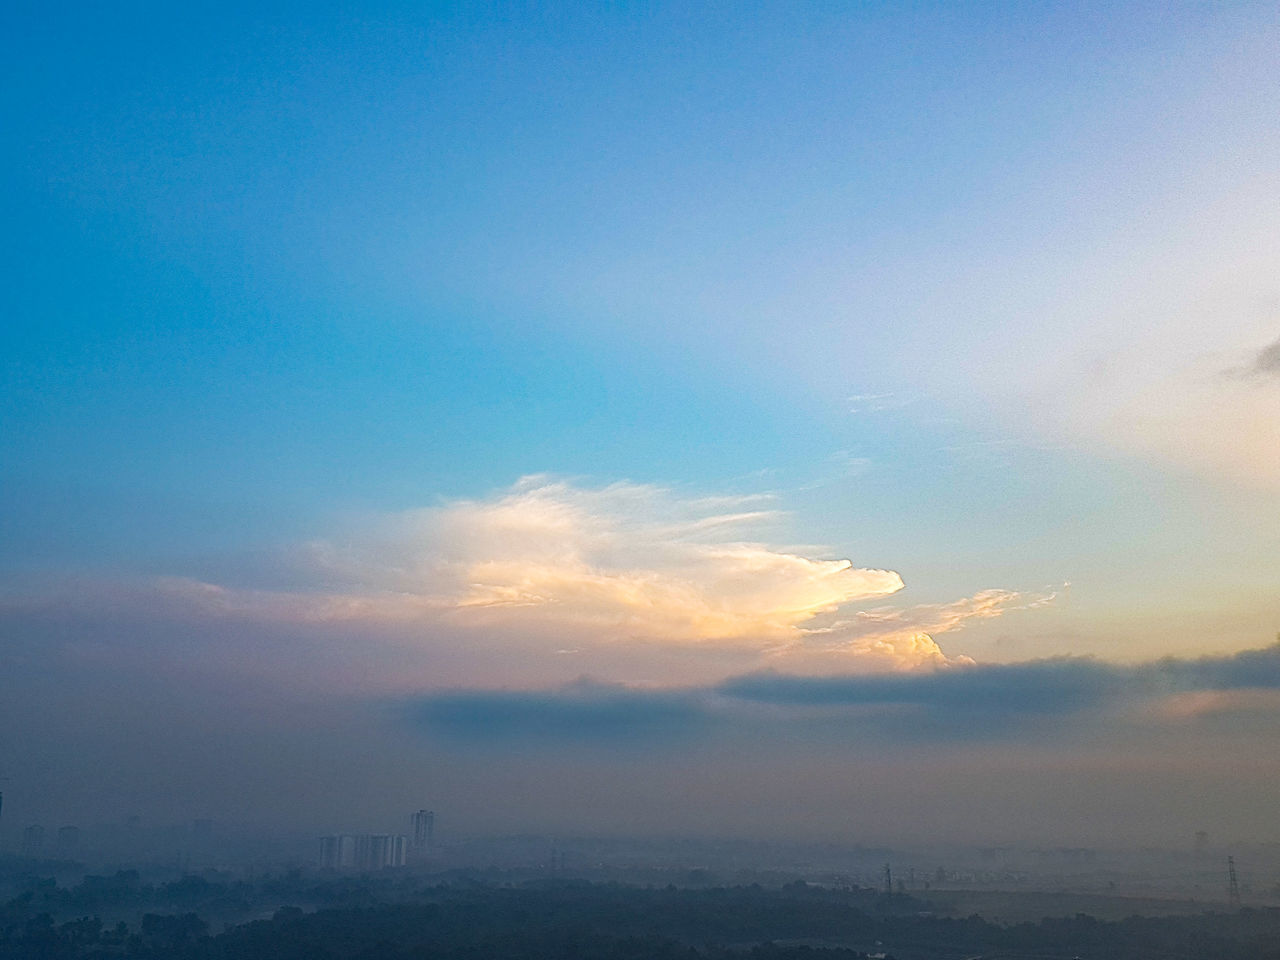 Cloud - Sky Sky Business Finance And Industry Sunset Social Issues City Tranquility Blue Travel Outdoors Environmental Issues Nature Journey No People Ethereal Awe Travel Destinations Day Urban Skyline Beauty In Nature Malaysia Johor Bahru